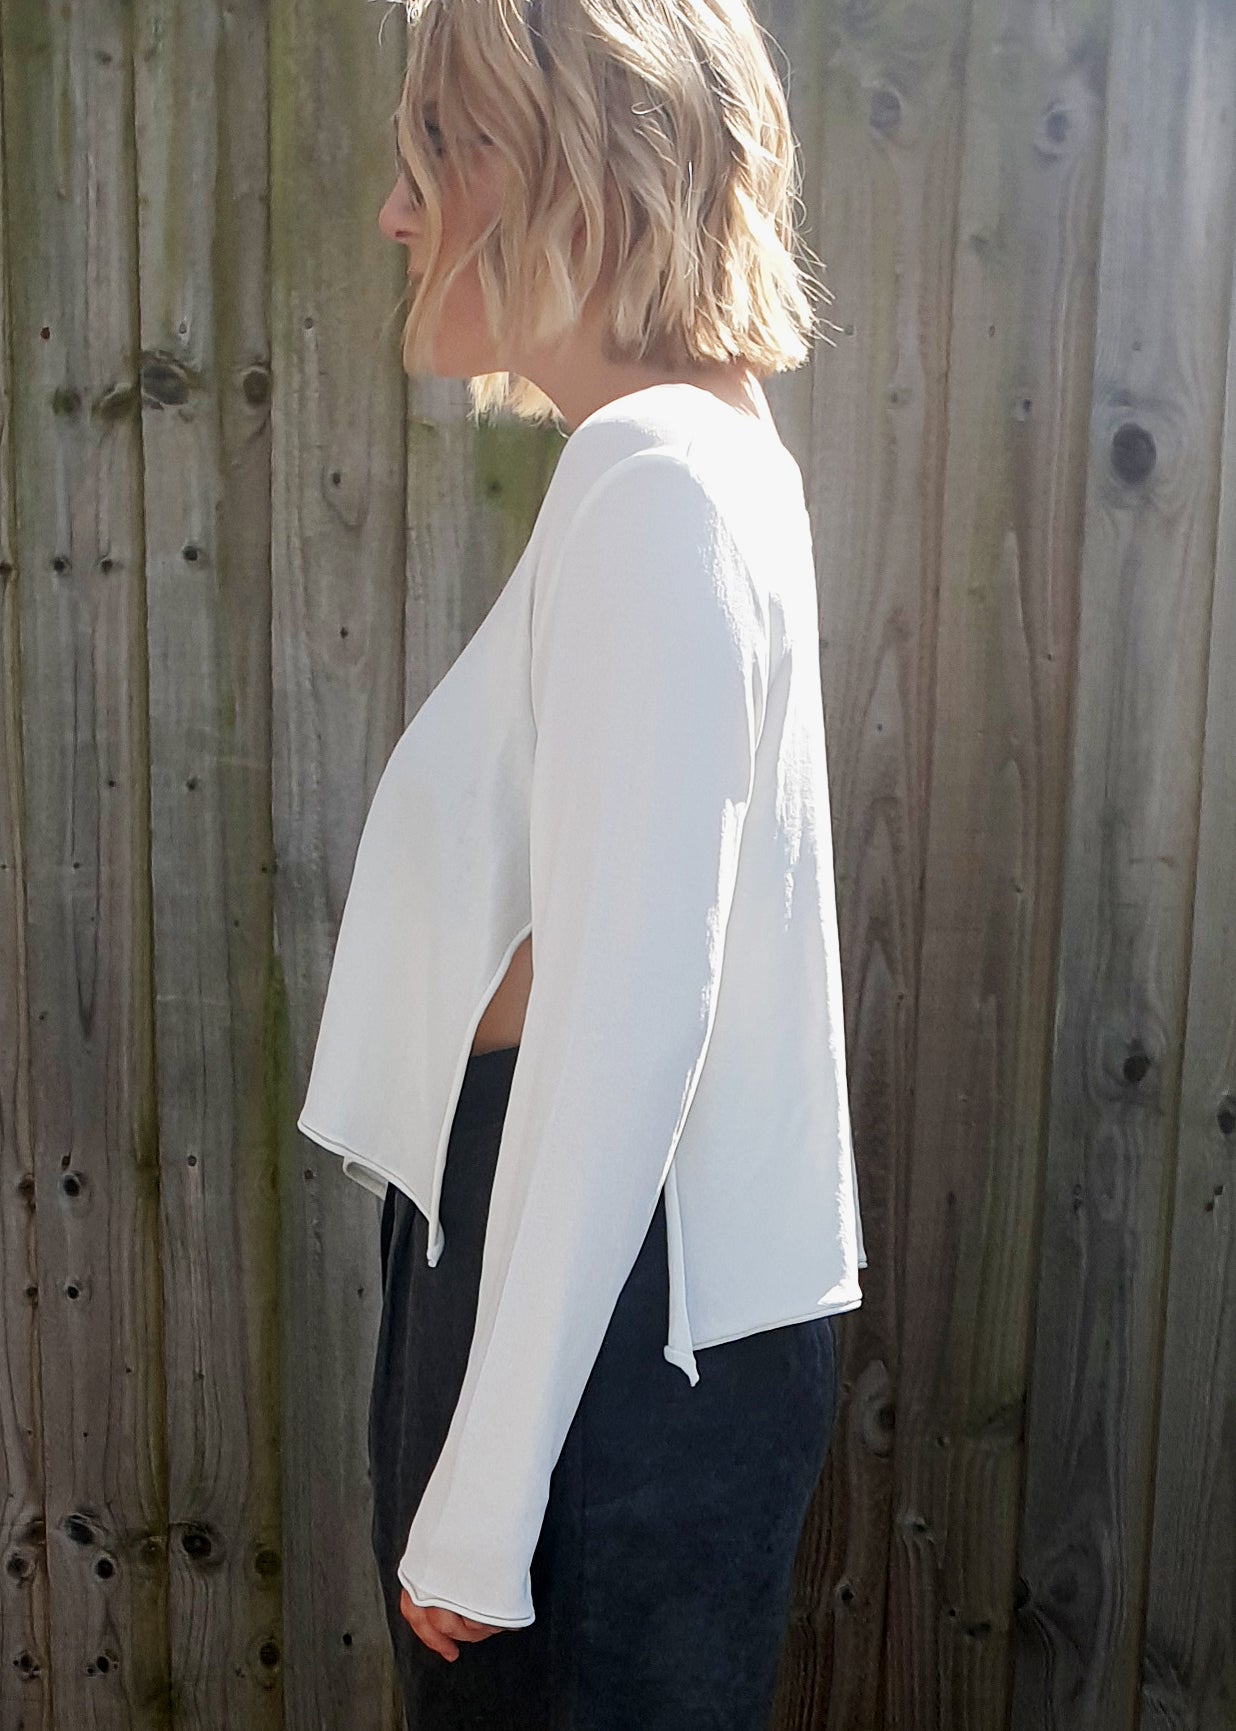 NOOK 'CLOE' JUMPER WITH SIDE SLIT- 2 COLOURS, Tops, Nook, Blue Women - Blue Women's Clothing